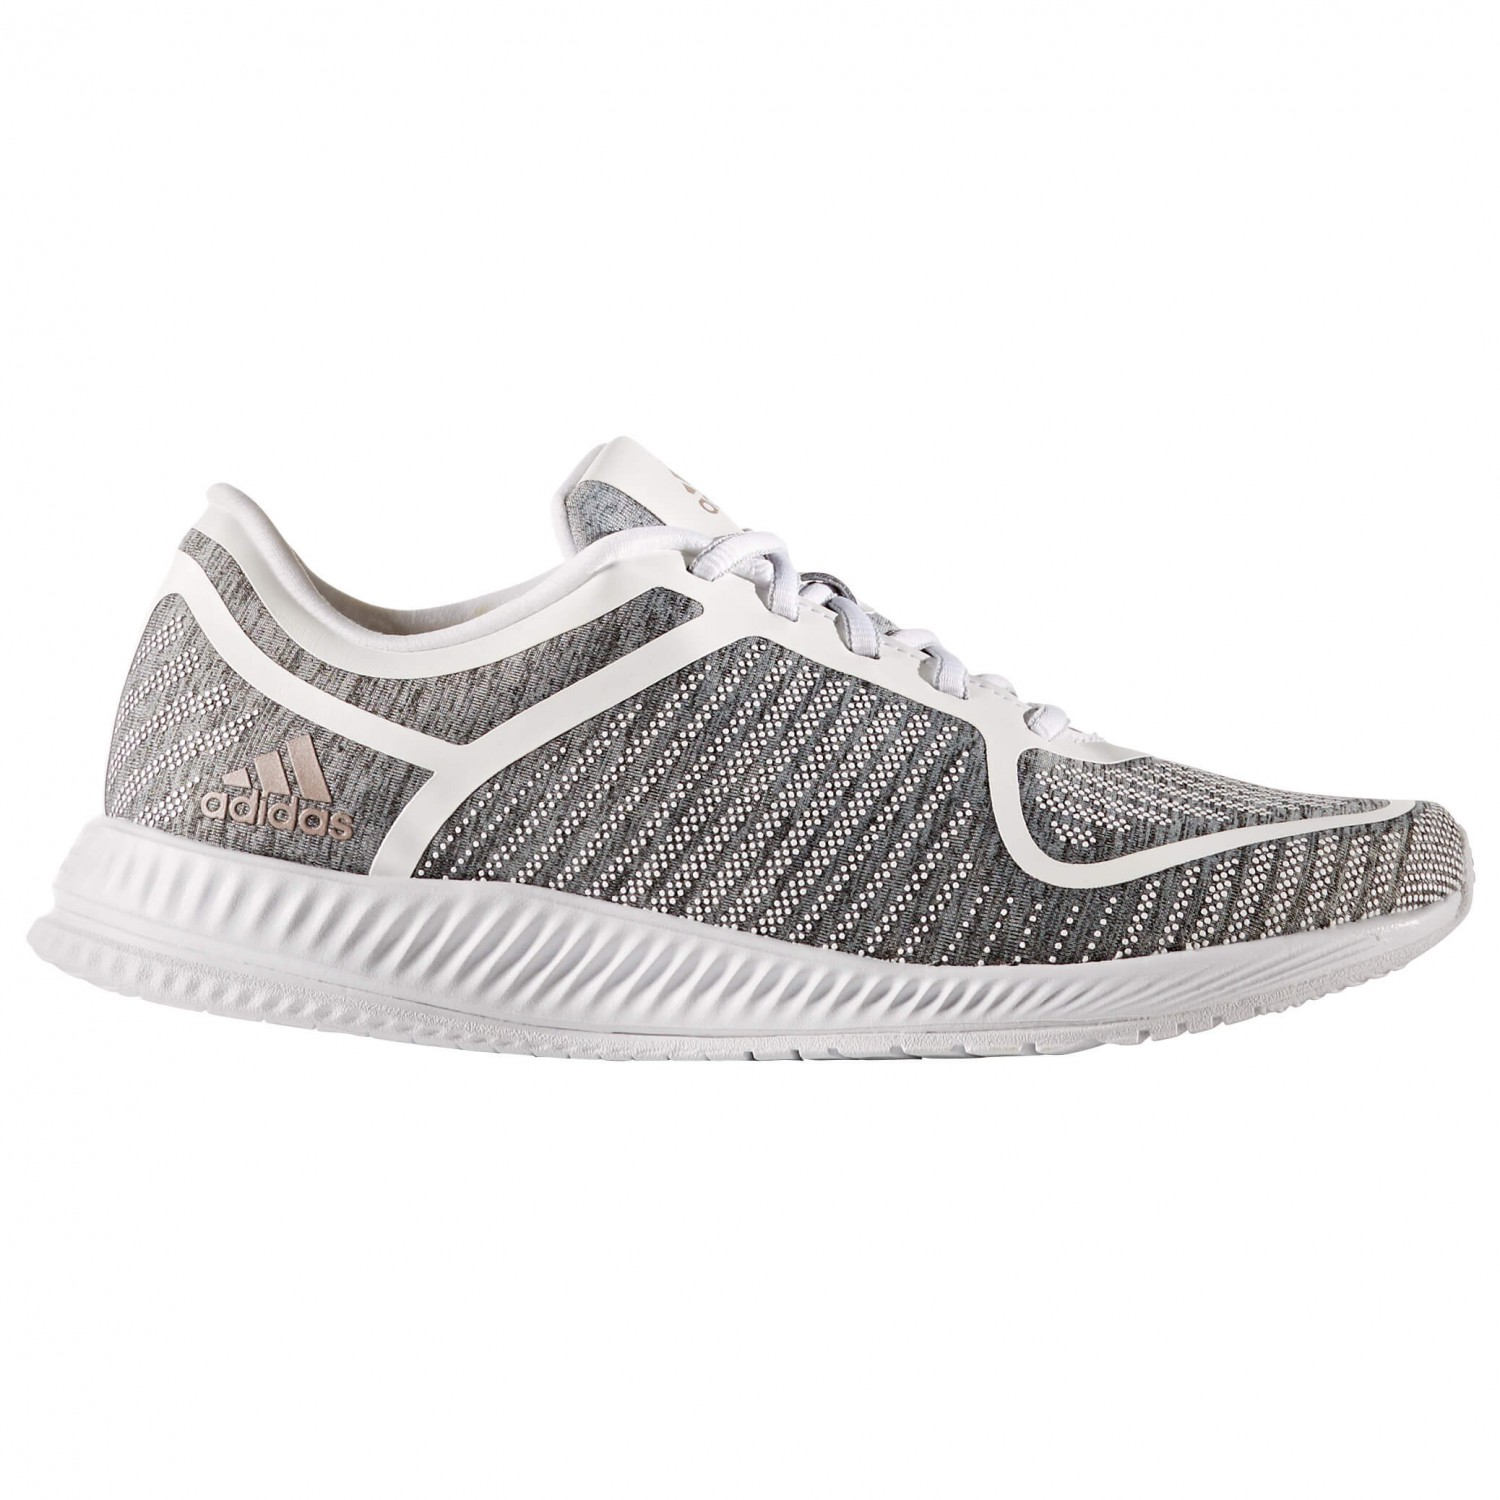 adidas Women's Athletics Bounce Chaussures de fitness Light Grey Heather Vap. Grey Met.F16 FTWR White | 5 (UK)